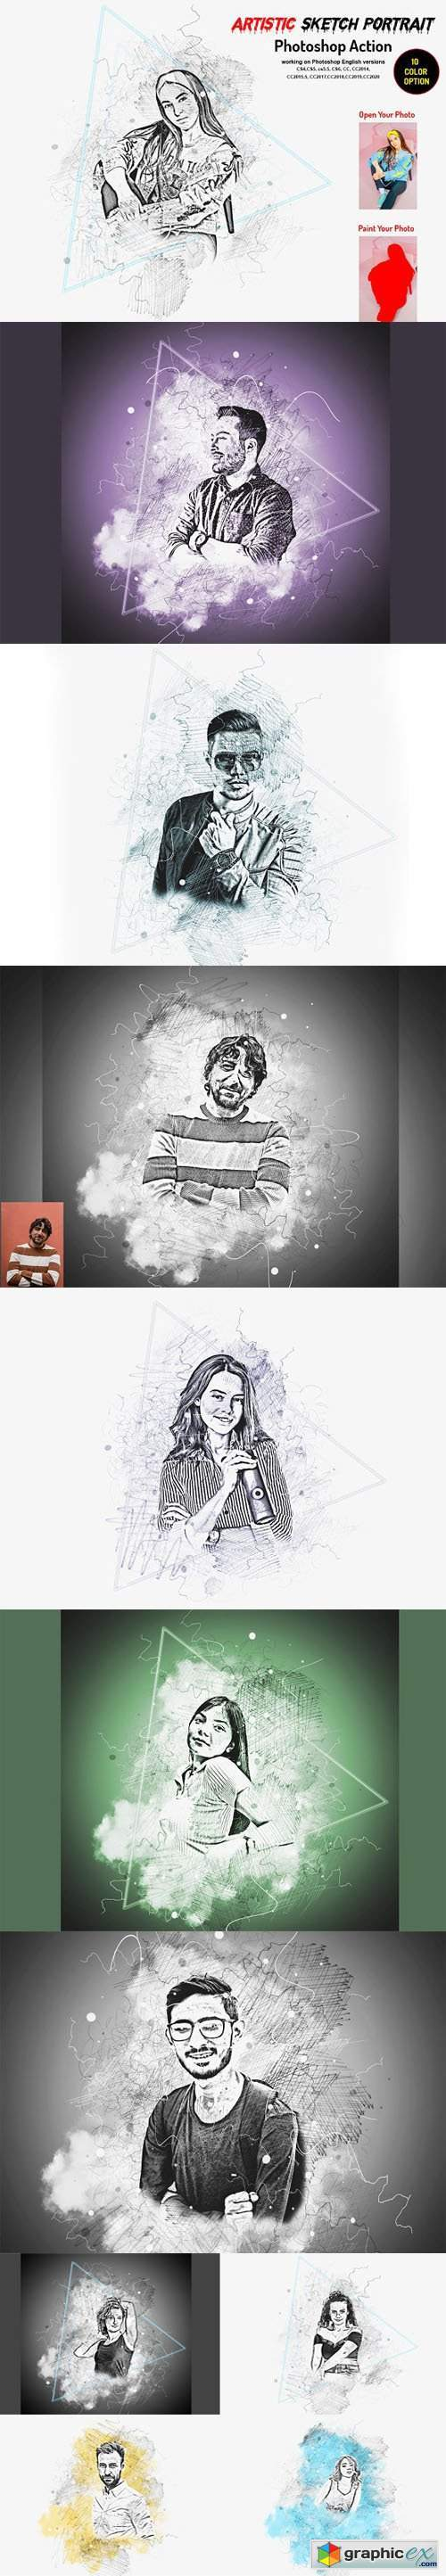 Artistic Sketch Portrait Action for Photoshop + Brushes